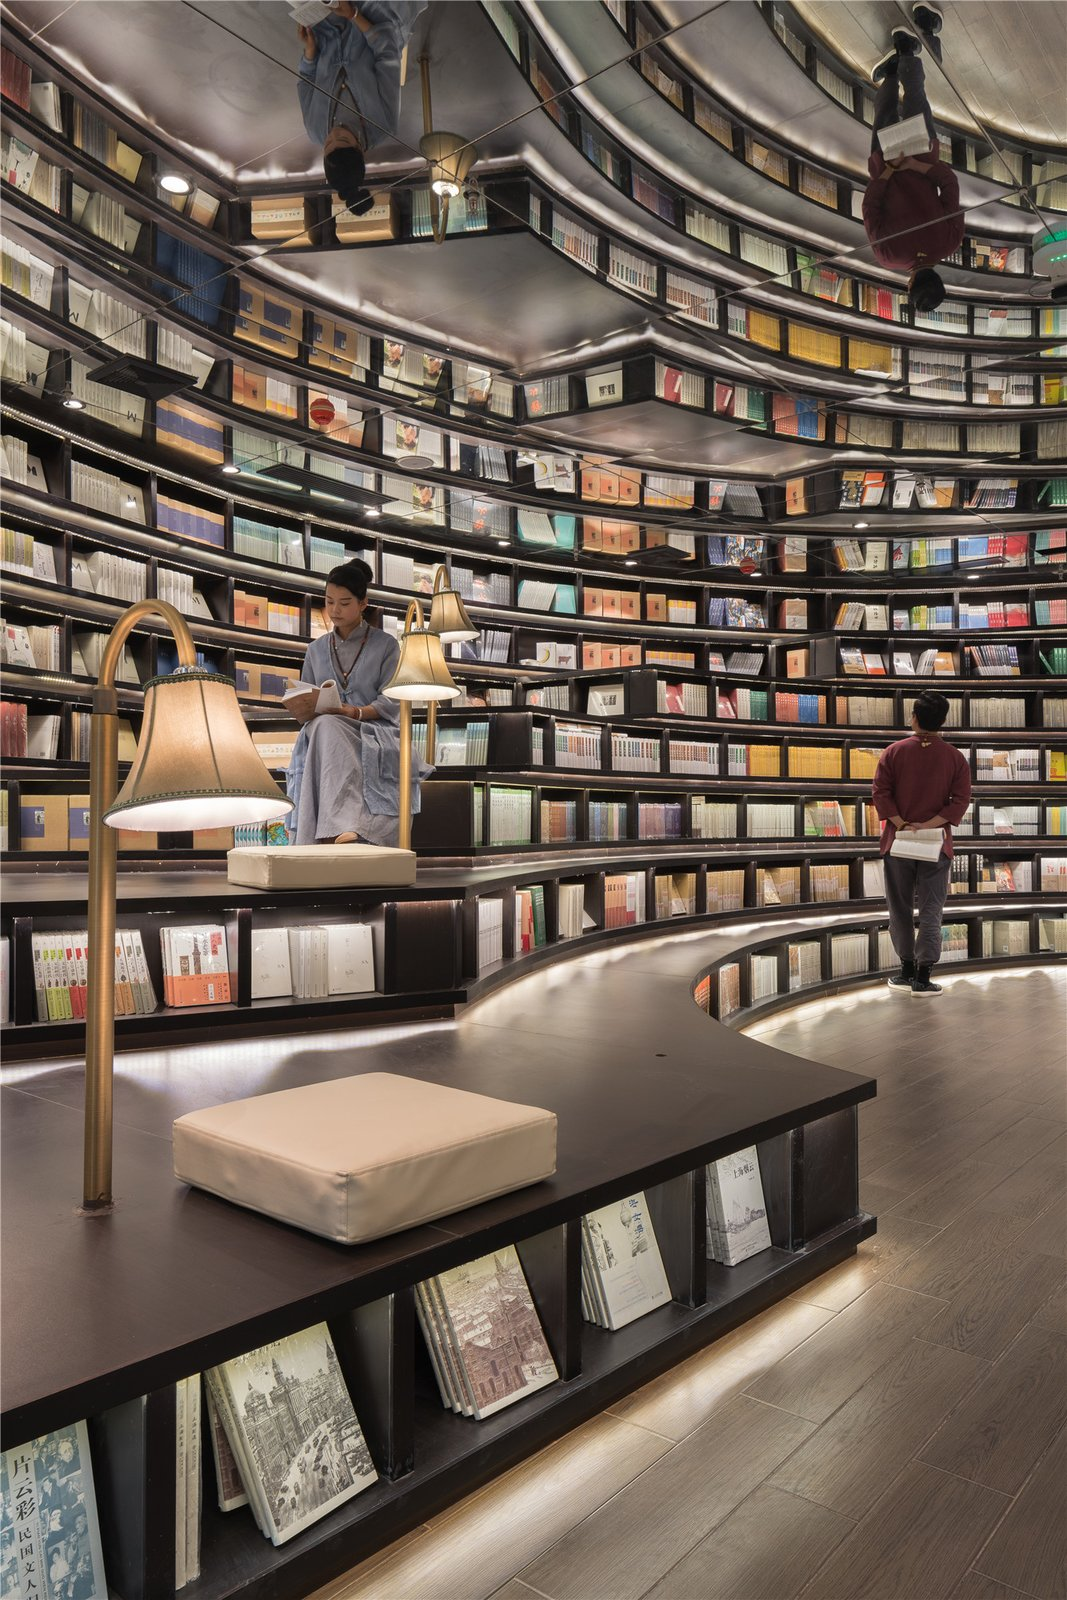 This Otherworldly Bookstore in China Provides a Mesmerizing Atmosphere For Reading - Photo 7 of 7